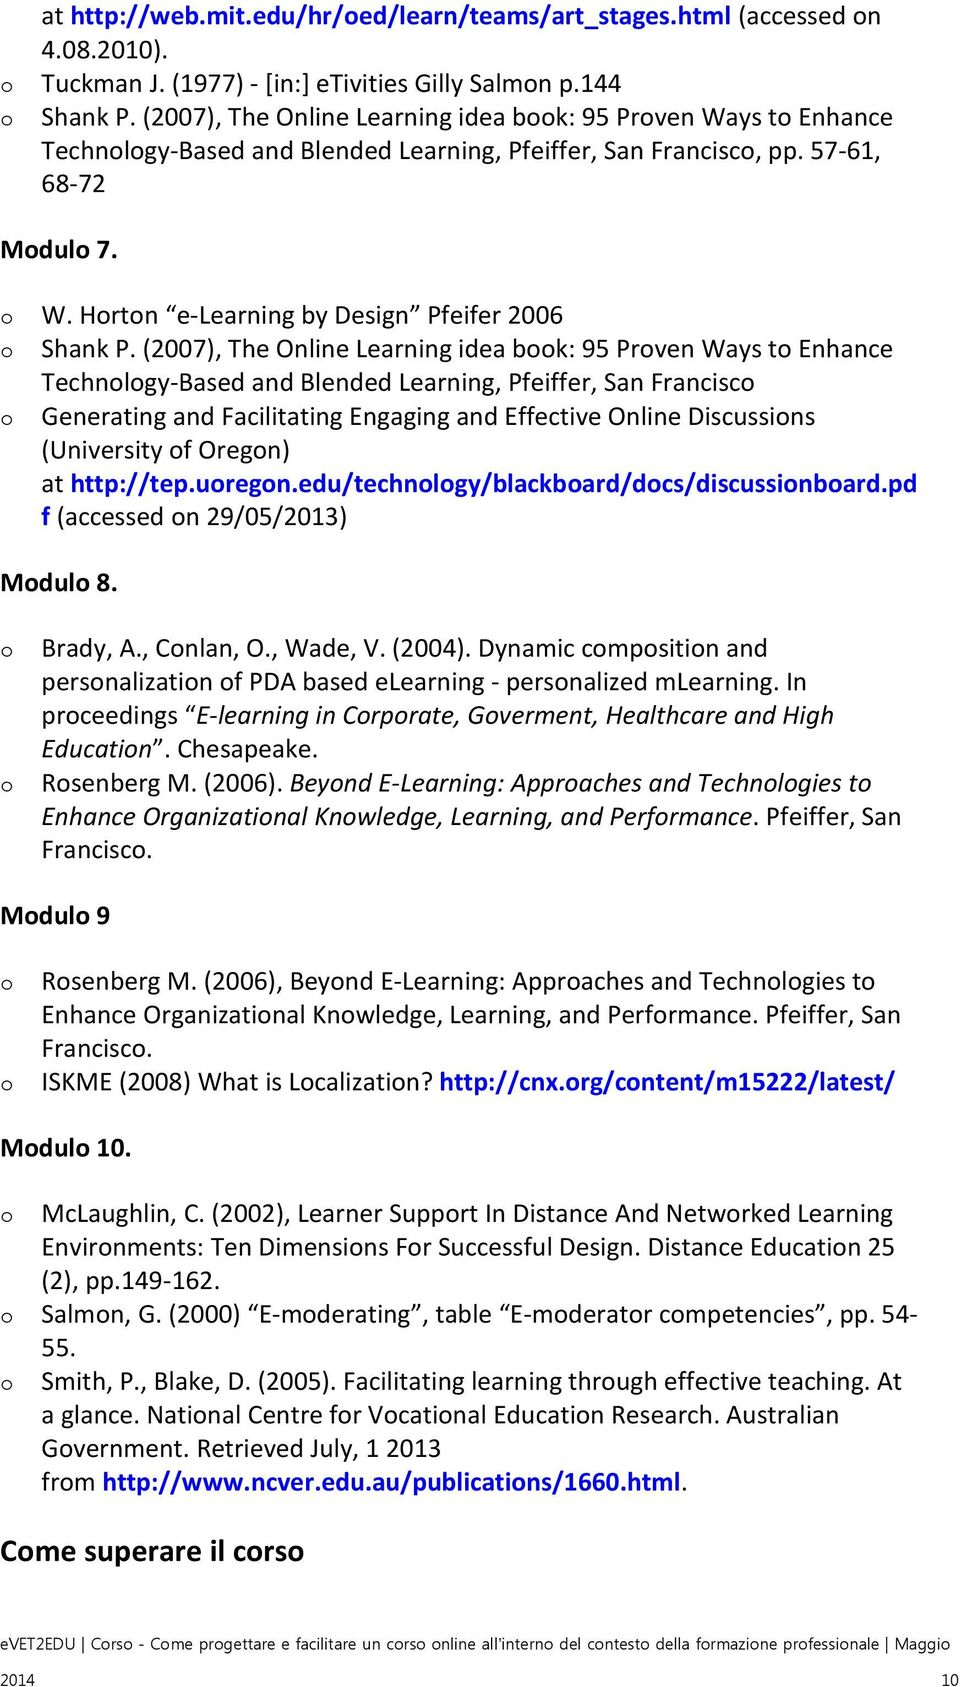 (2007), The Online Learning idea bk: 95 Prven Ways t Enhance Technlgy-Based and Blended Learning, Pfeiffer, San Francisc Generating and Facilitating Engaging and Effective Online Discussins